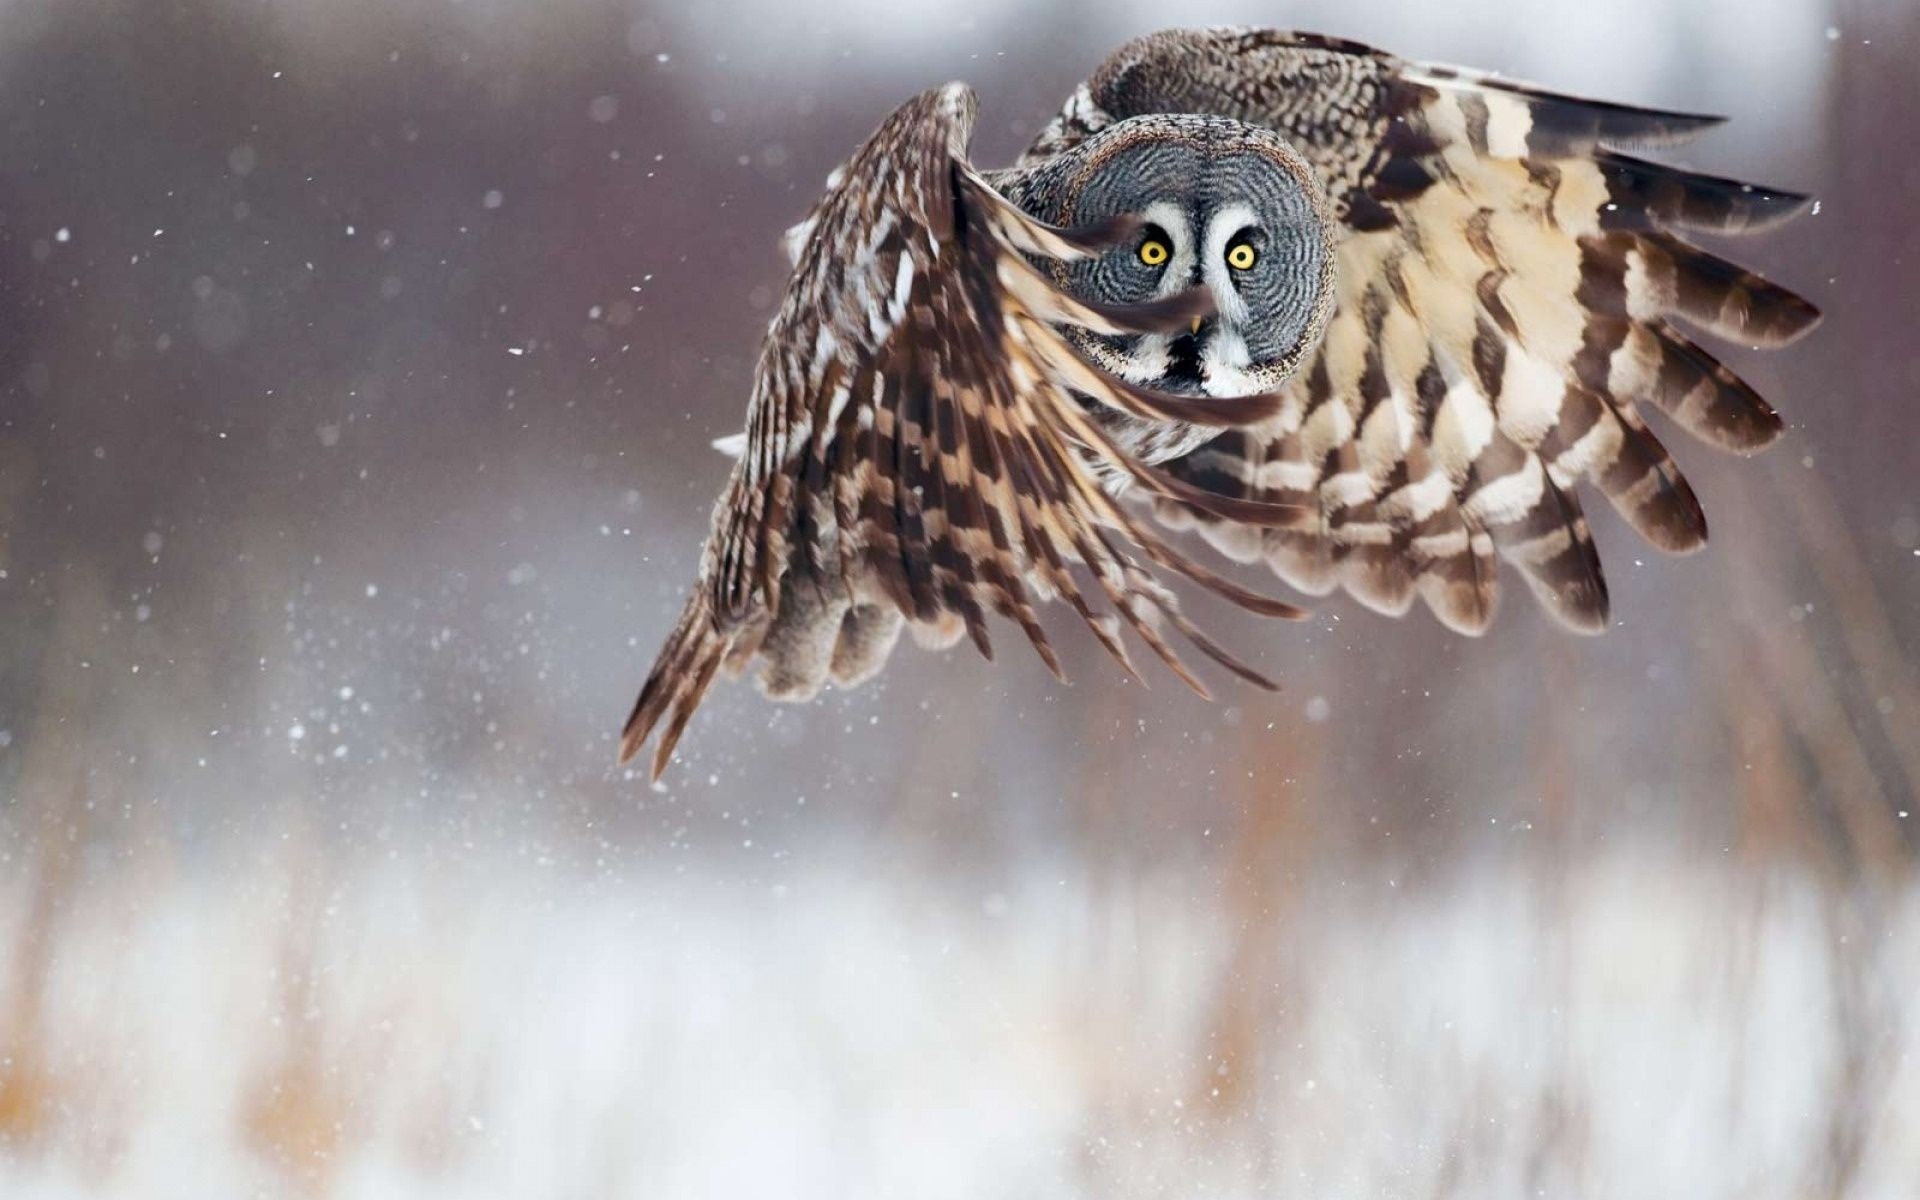 Image detail for bird, owl, snow, winter, animals Free